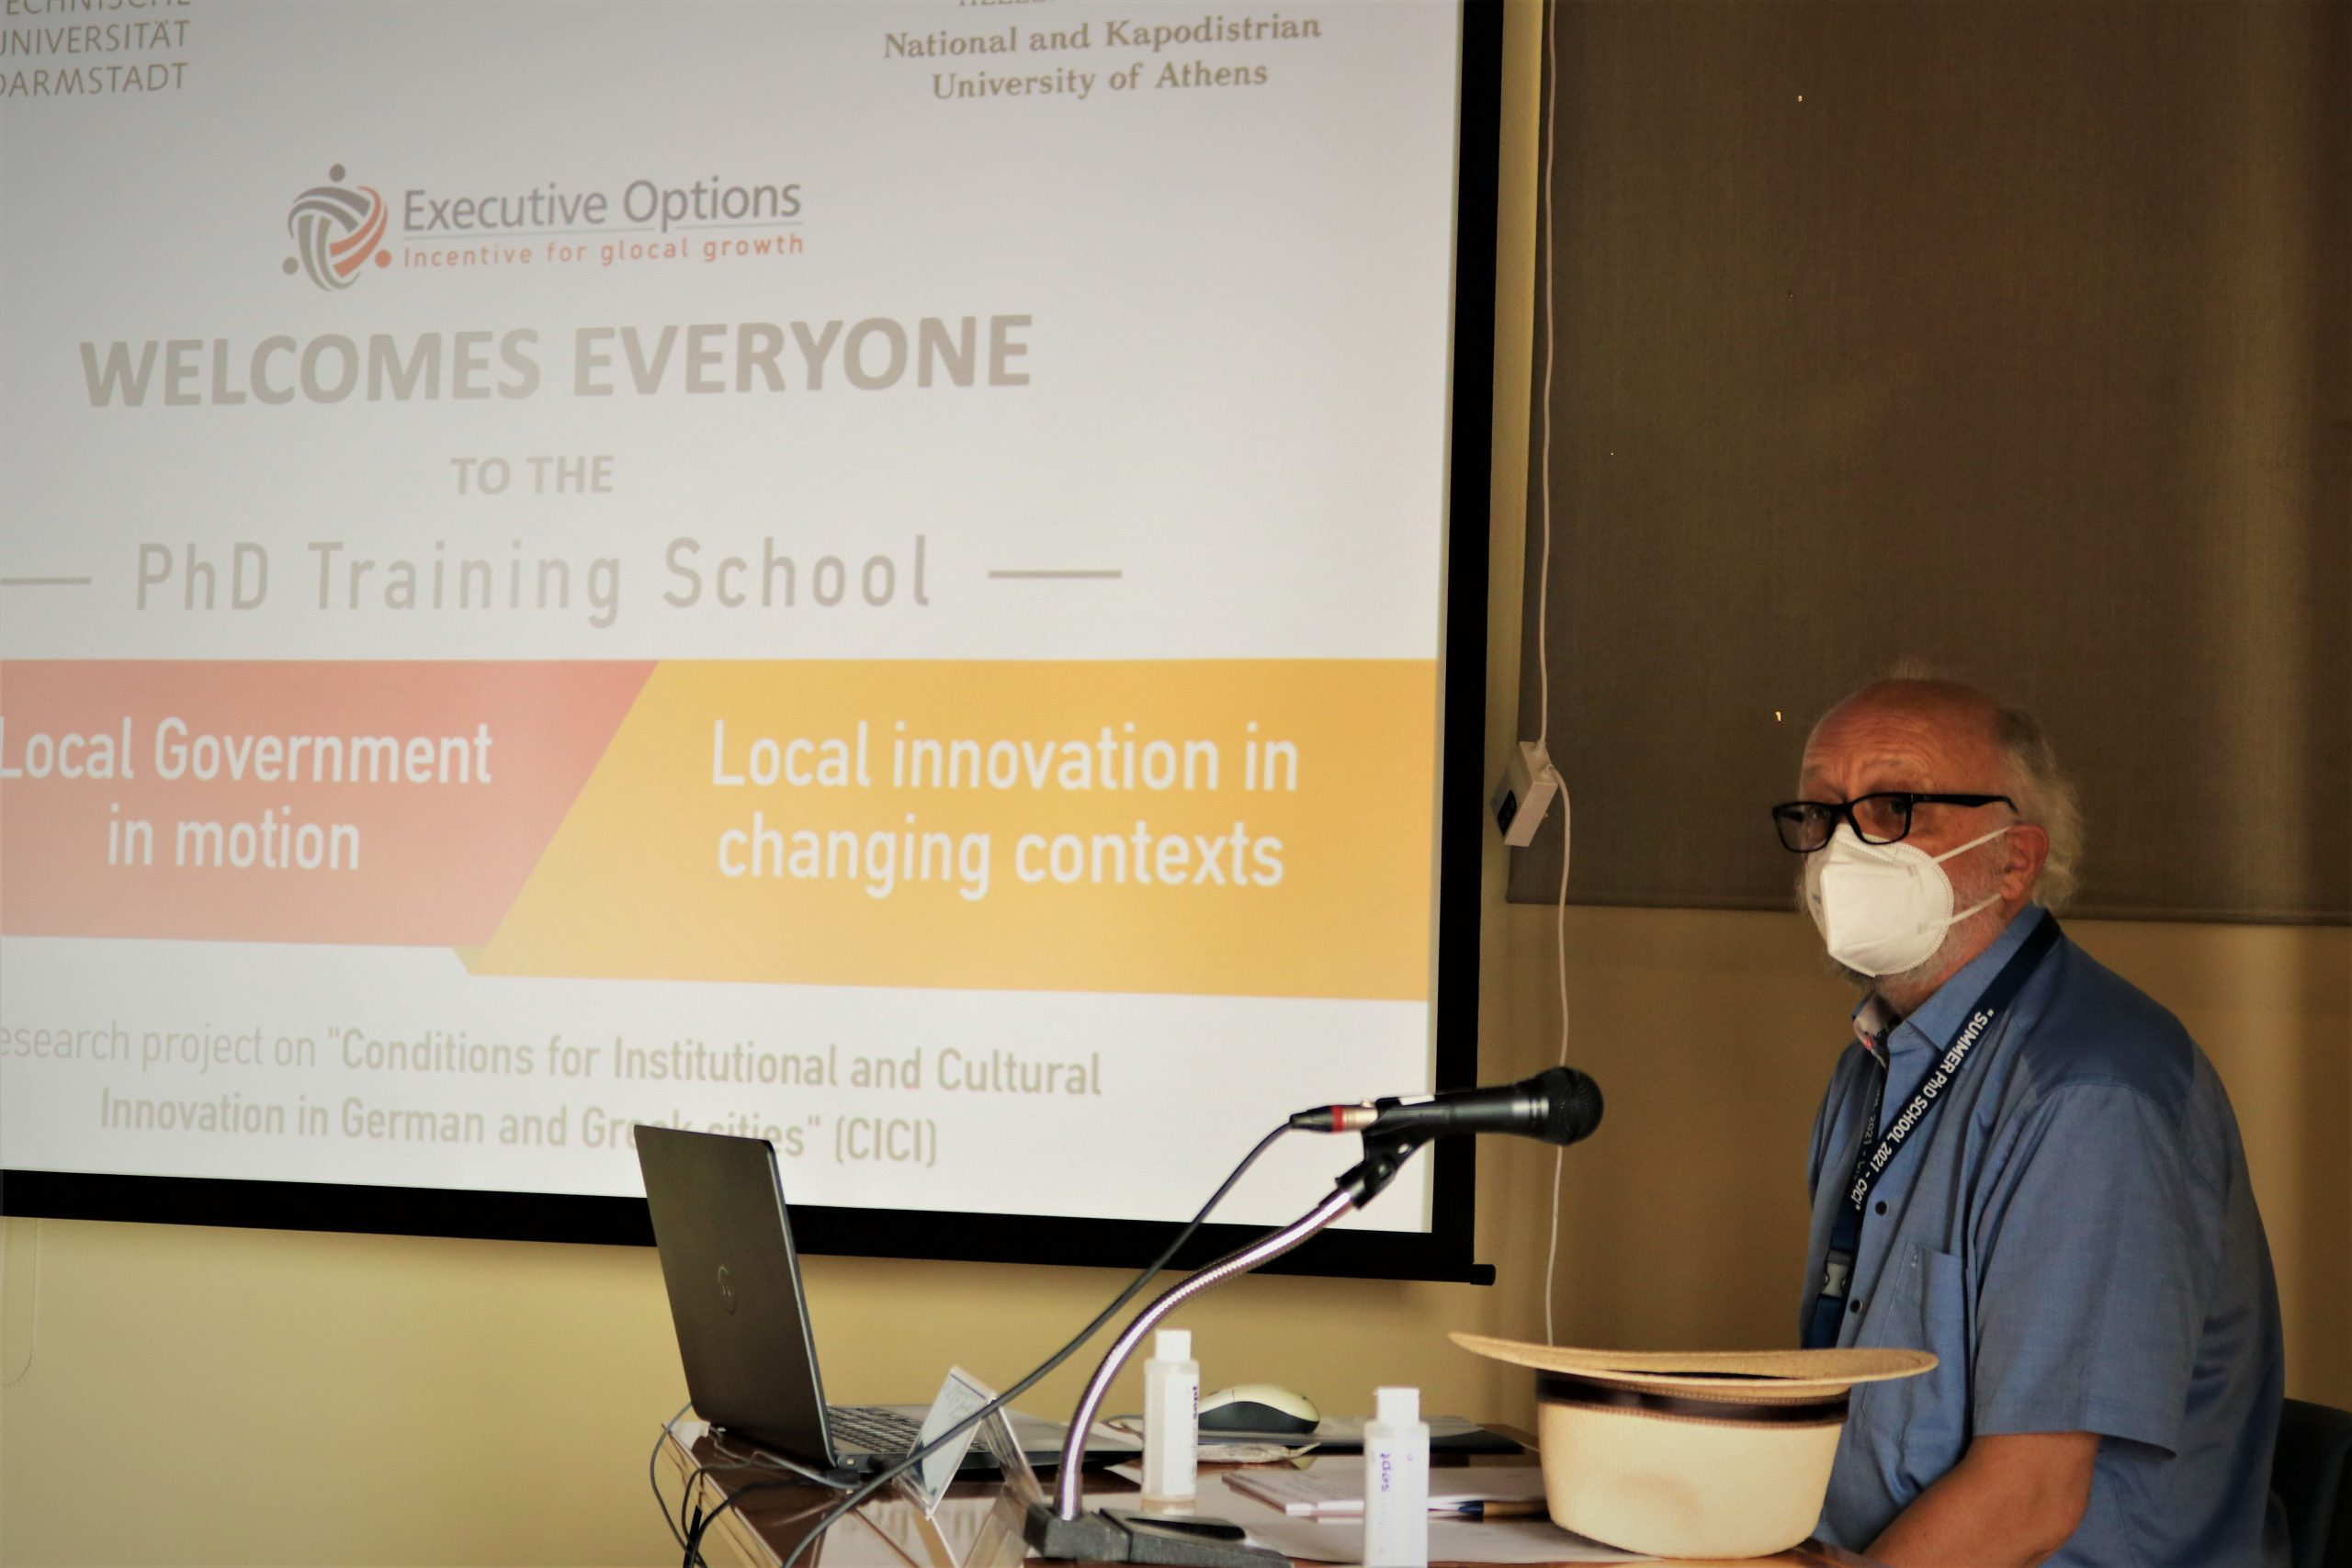 PRESS RELEASE: Summer School on 'Local government in motion – Local innovation in changing contexts'